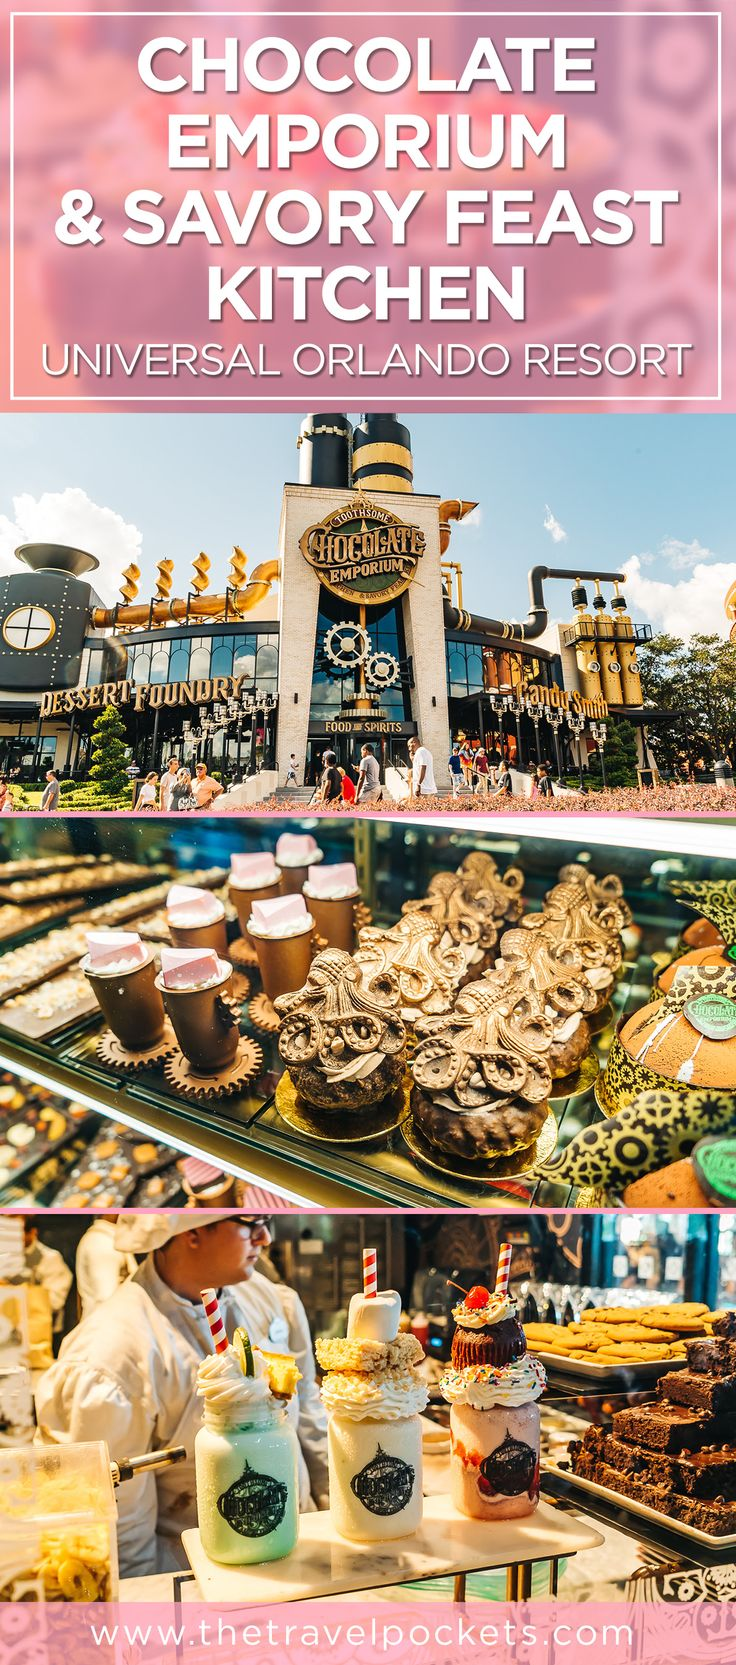 Chocolate galore in steampunk fashion at Universal Orlando, Florida, USA. #chocolates #UniversalOrlando #ChocolateEmporium #Florida #Orlando